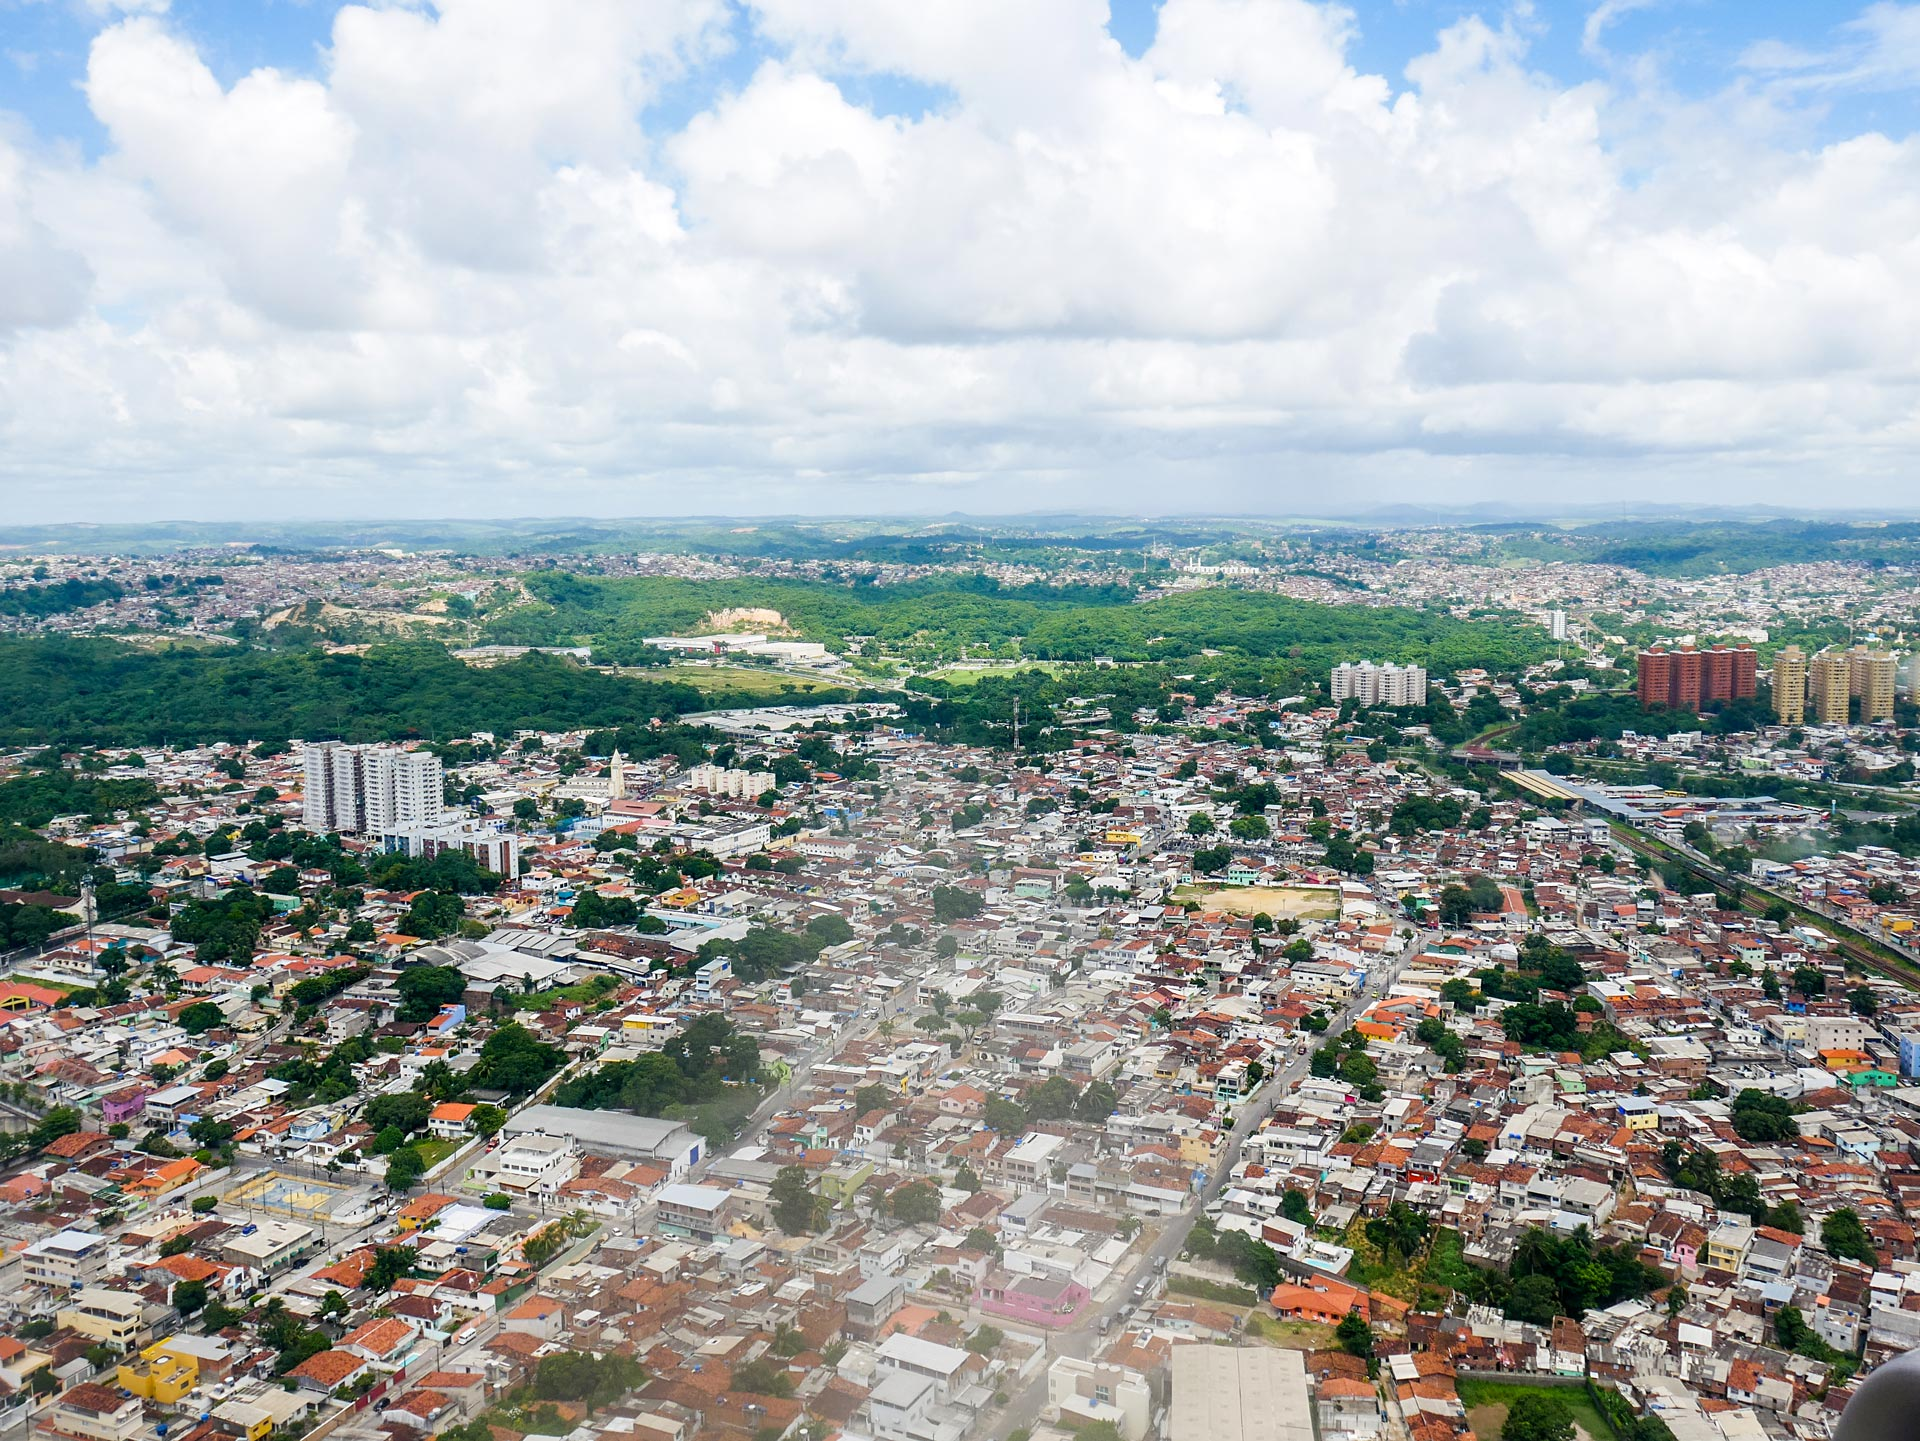 View of Recife, Brazil, from plane